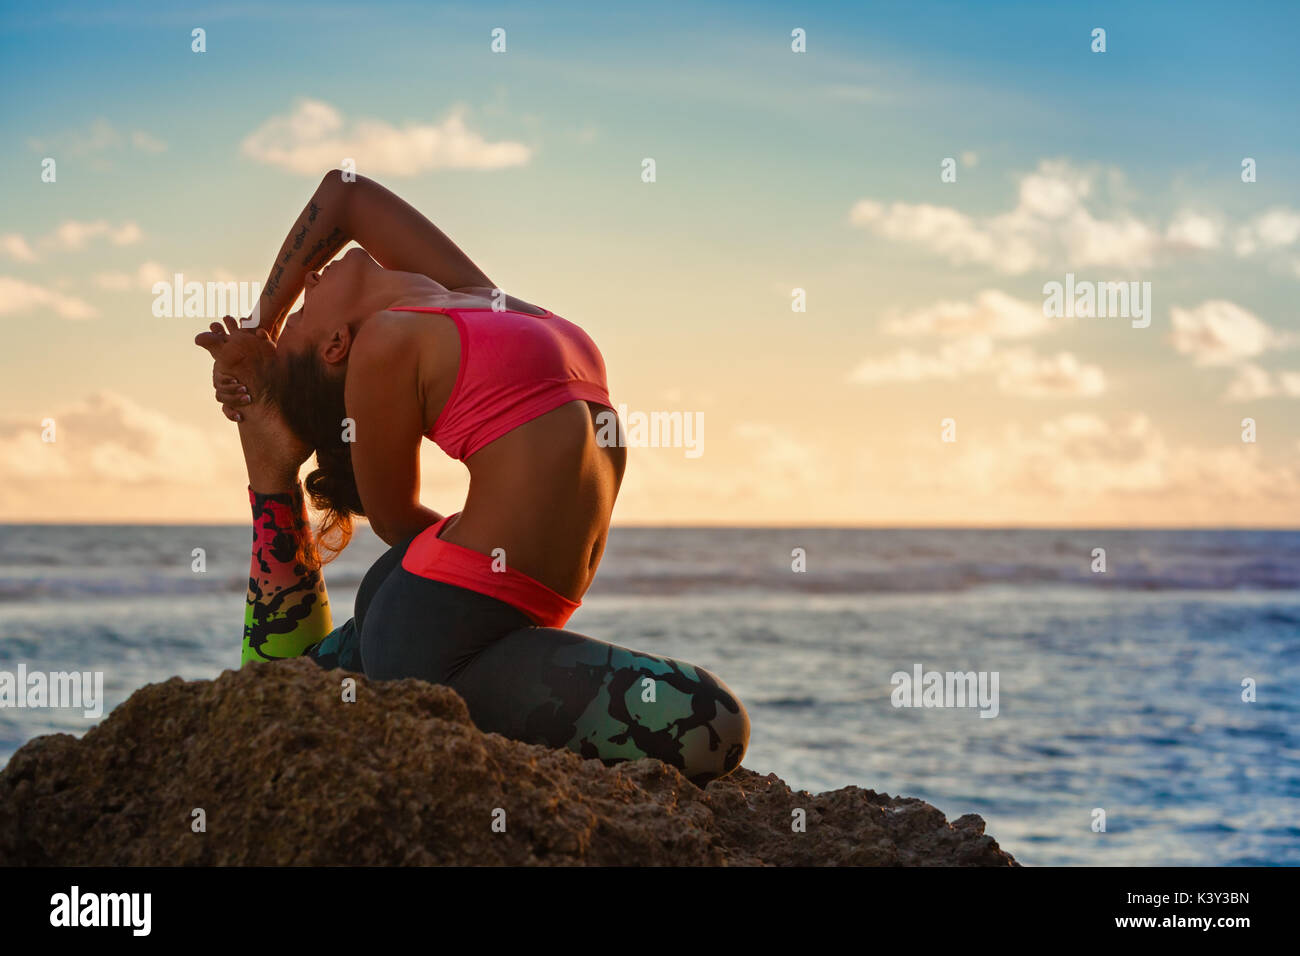 Meditation on sunset sky background. Young active woman sit in yoga pose on beach rock, stretching to keep fit and health. Healthy lifestyle, fitness - Stock Image